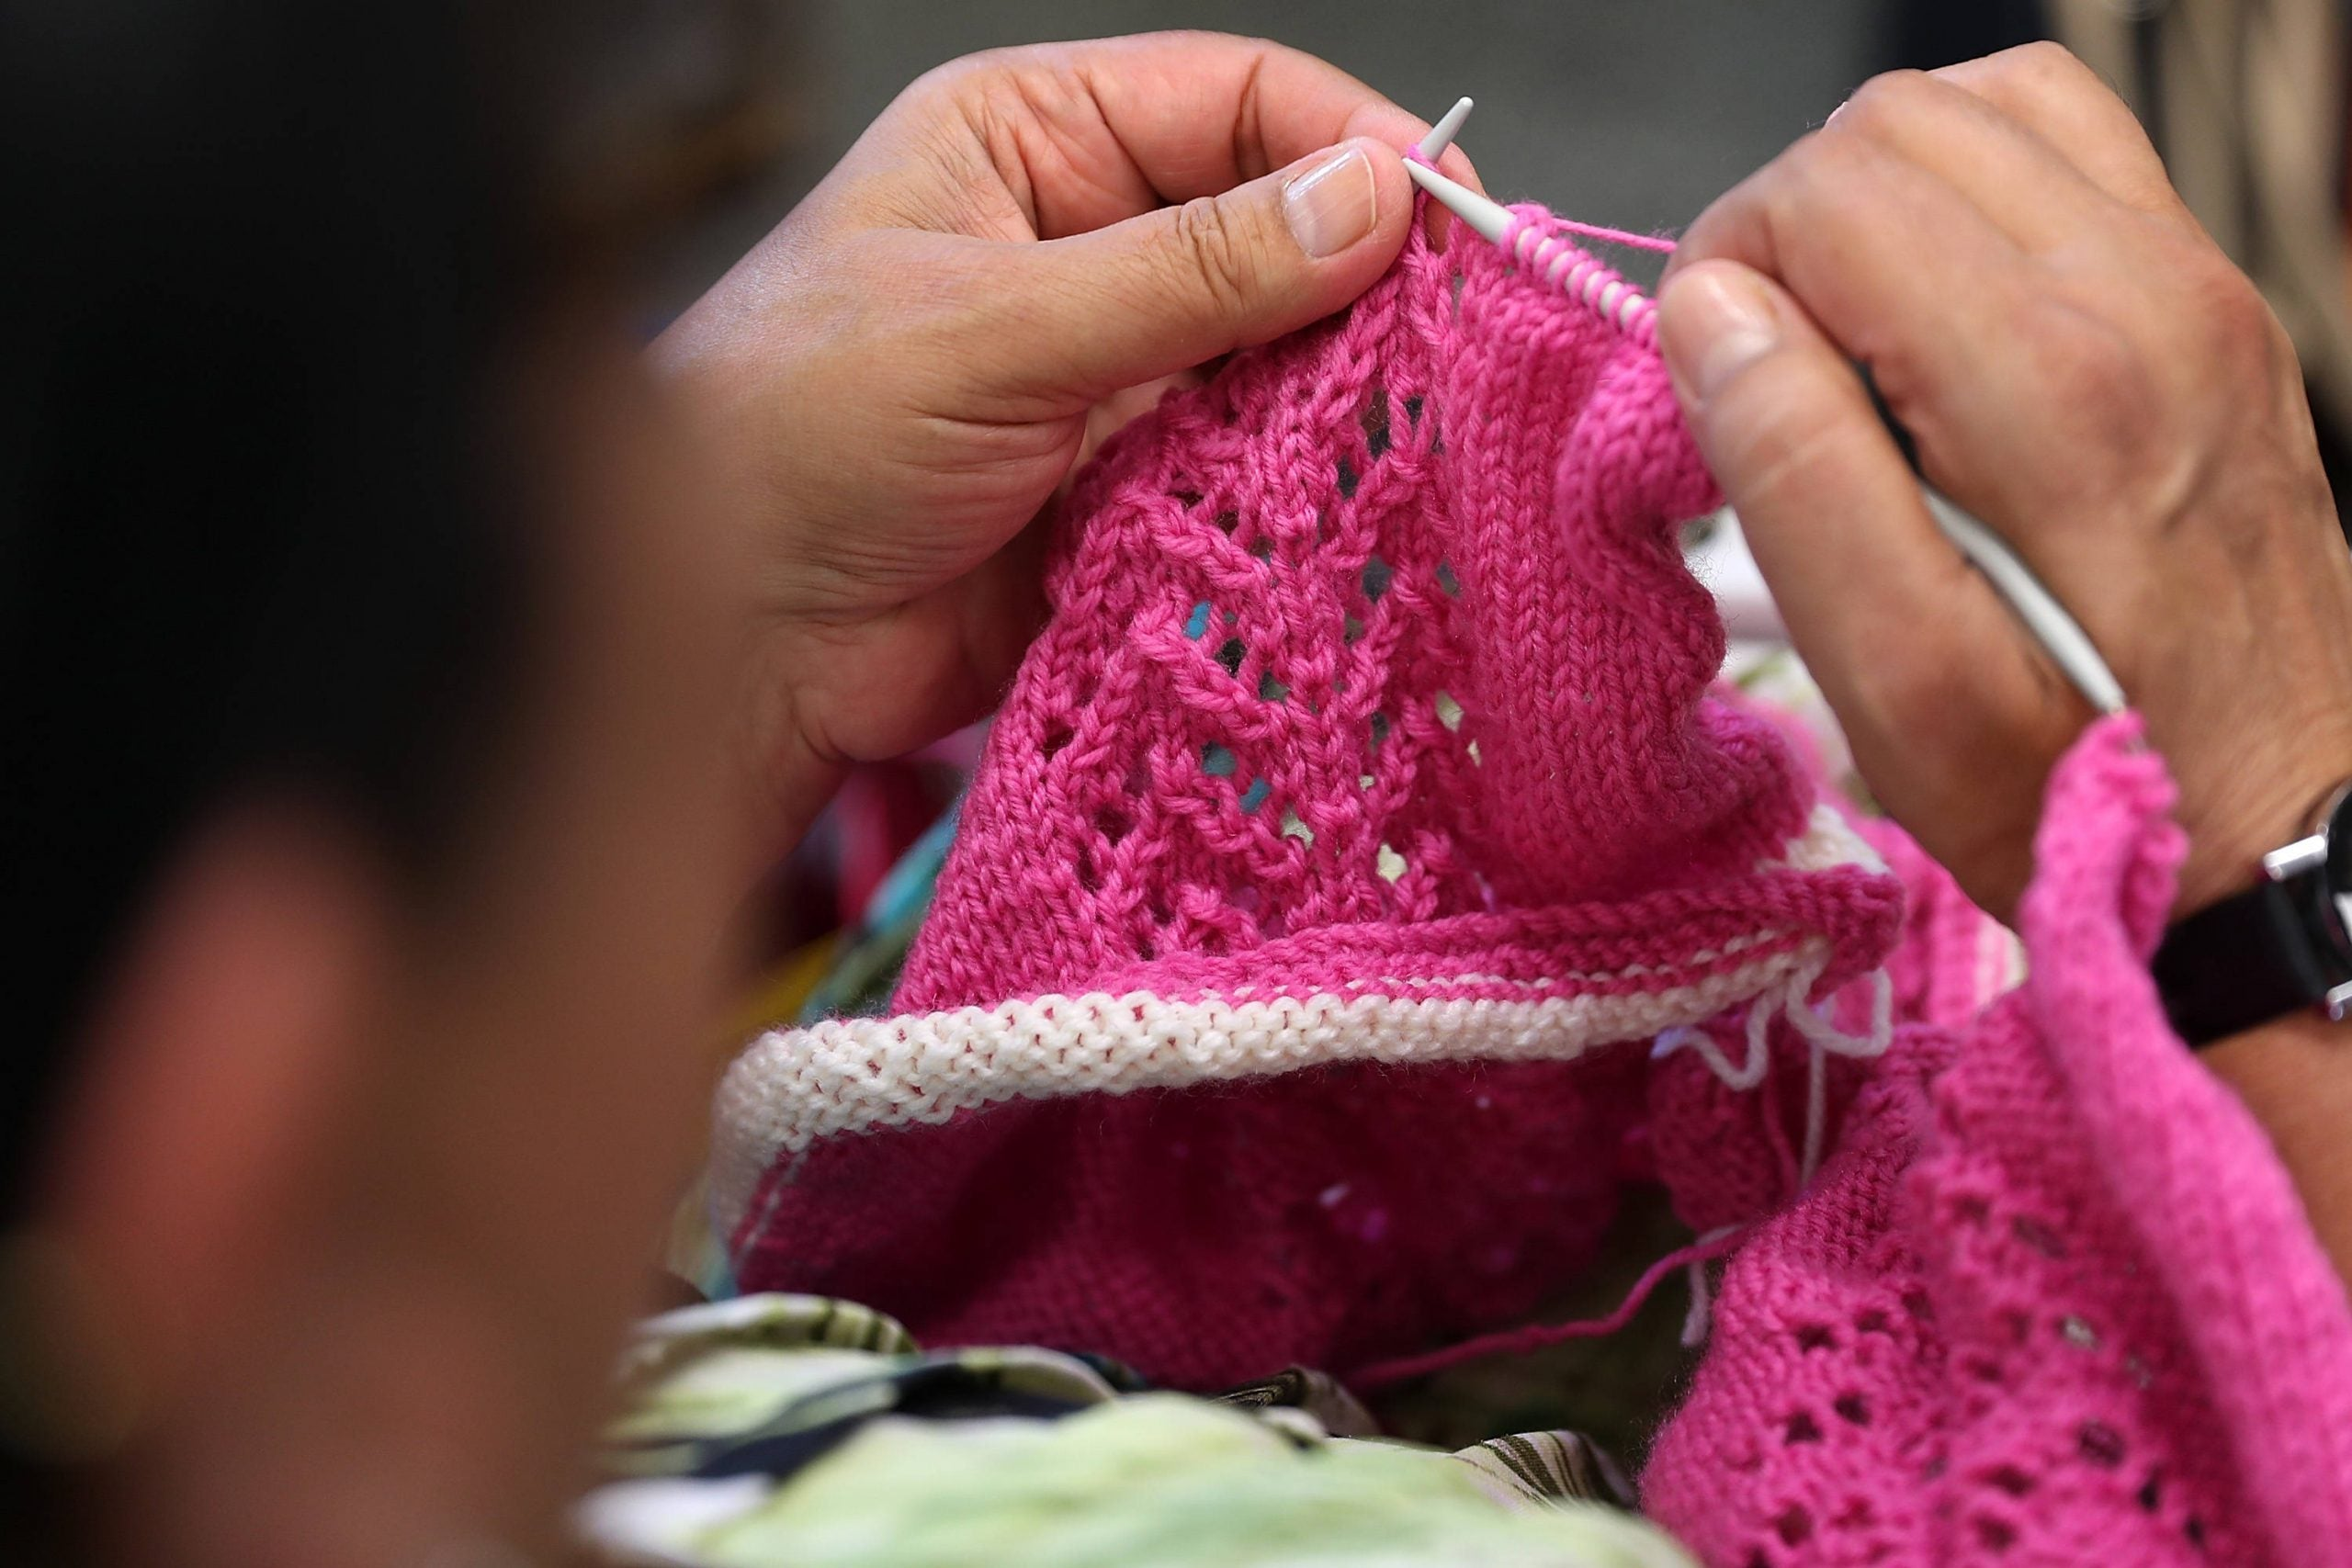 How an online knitting forum taught me how suffering can be exploited on the internet